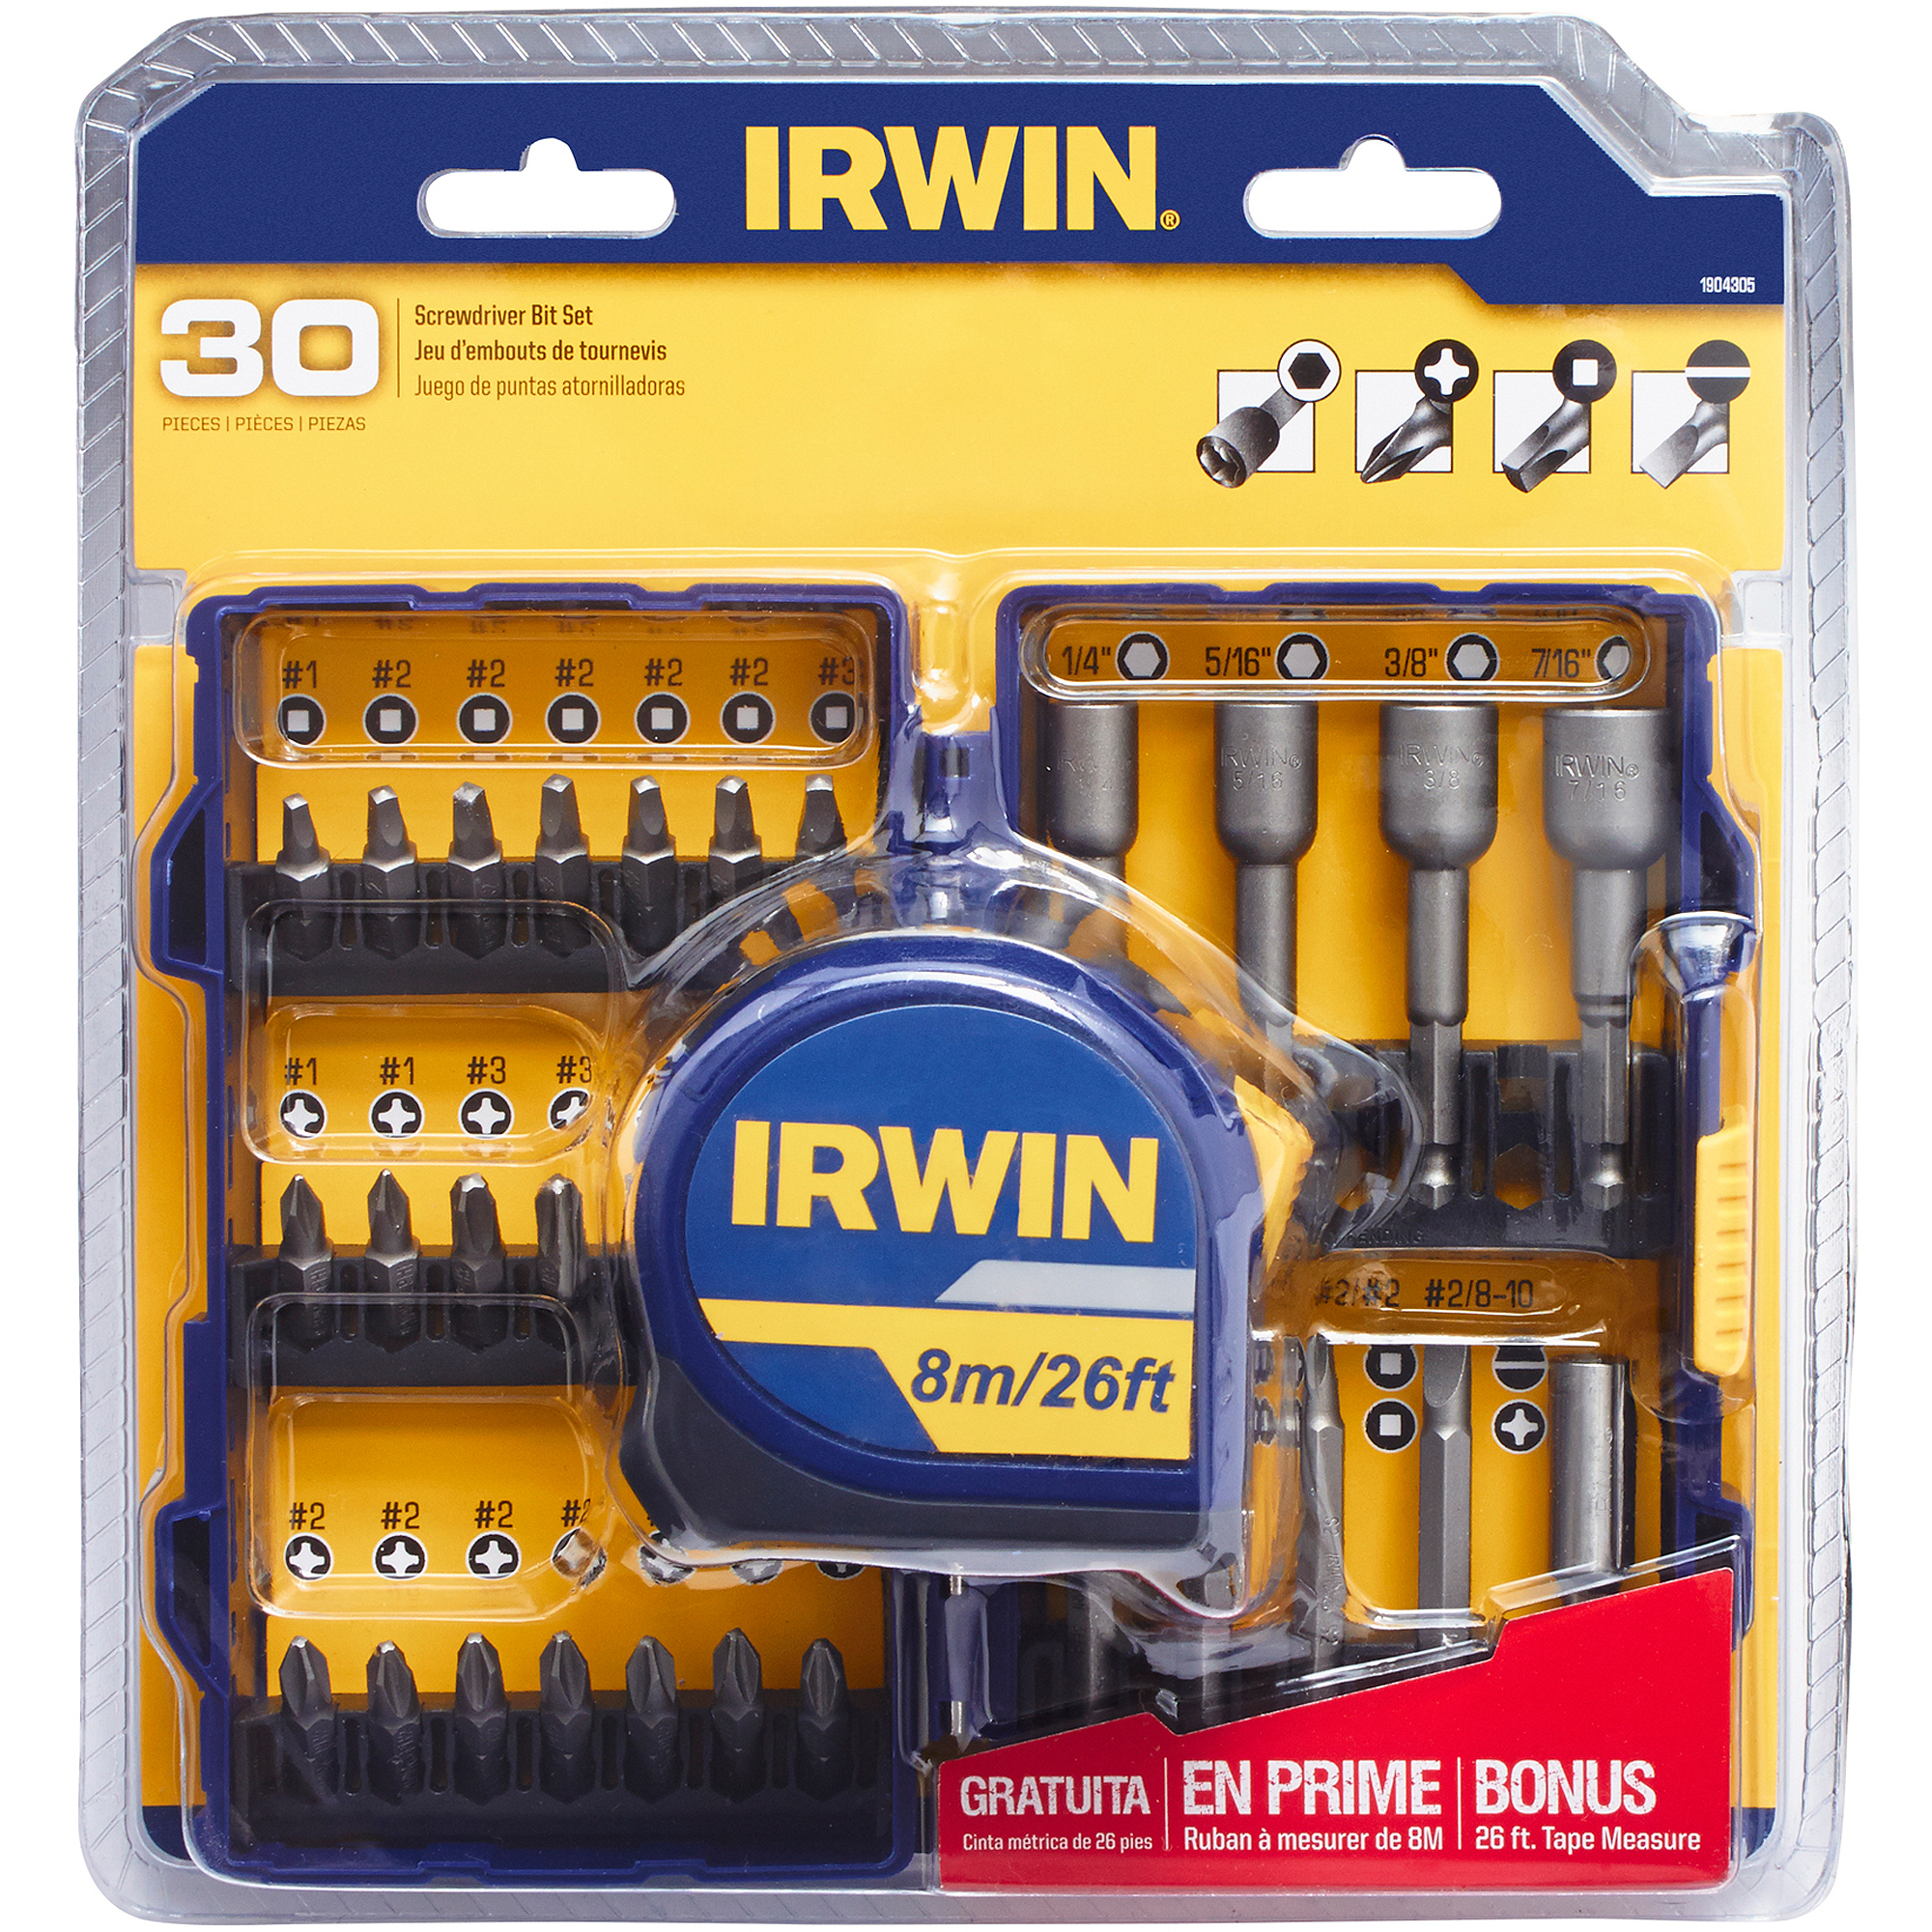 Irwin 30-Piece Screwdriver Set with Bonus Tape Measure, 1904305